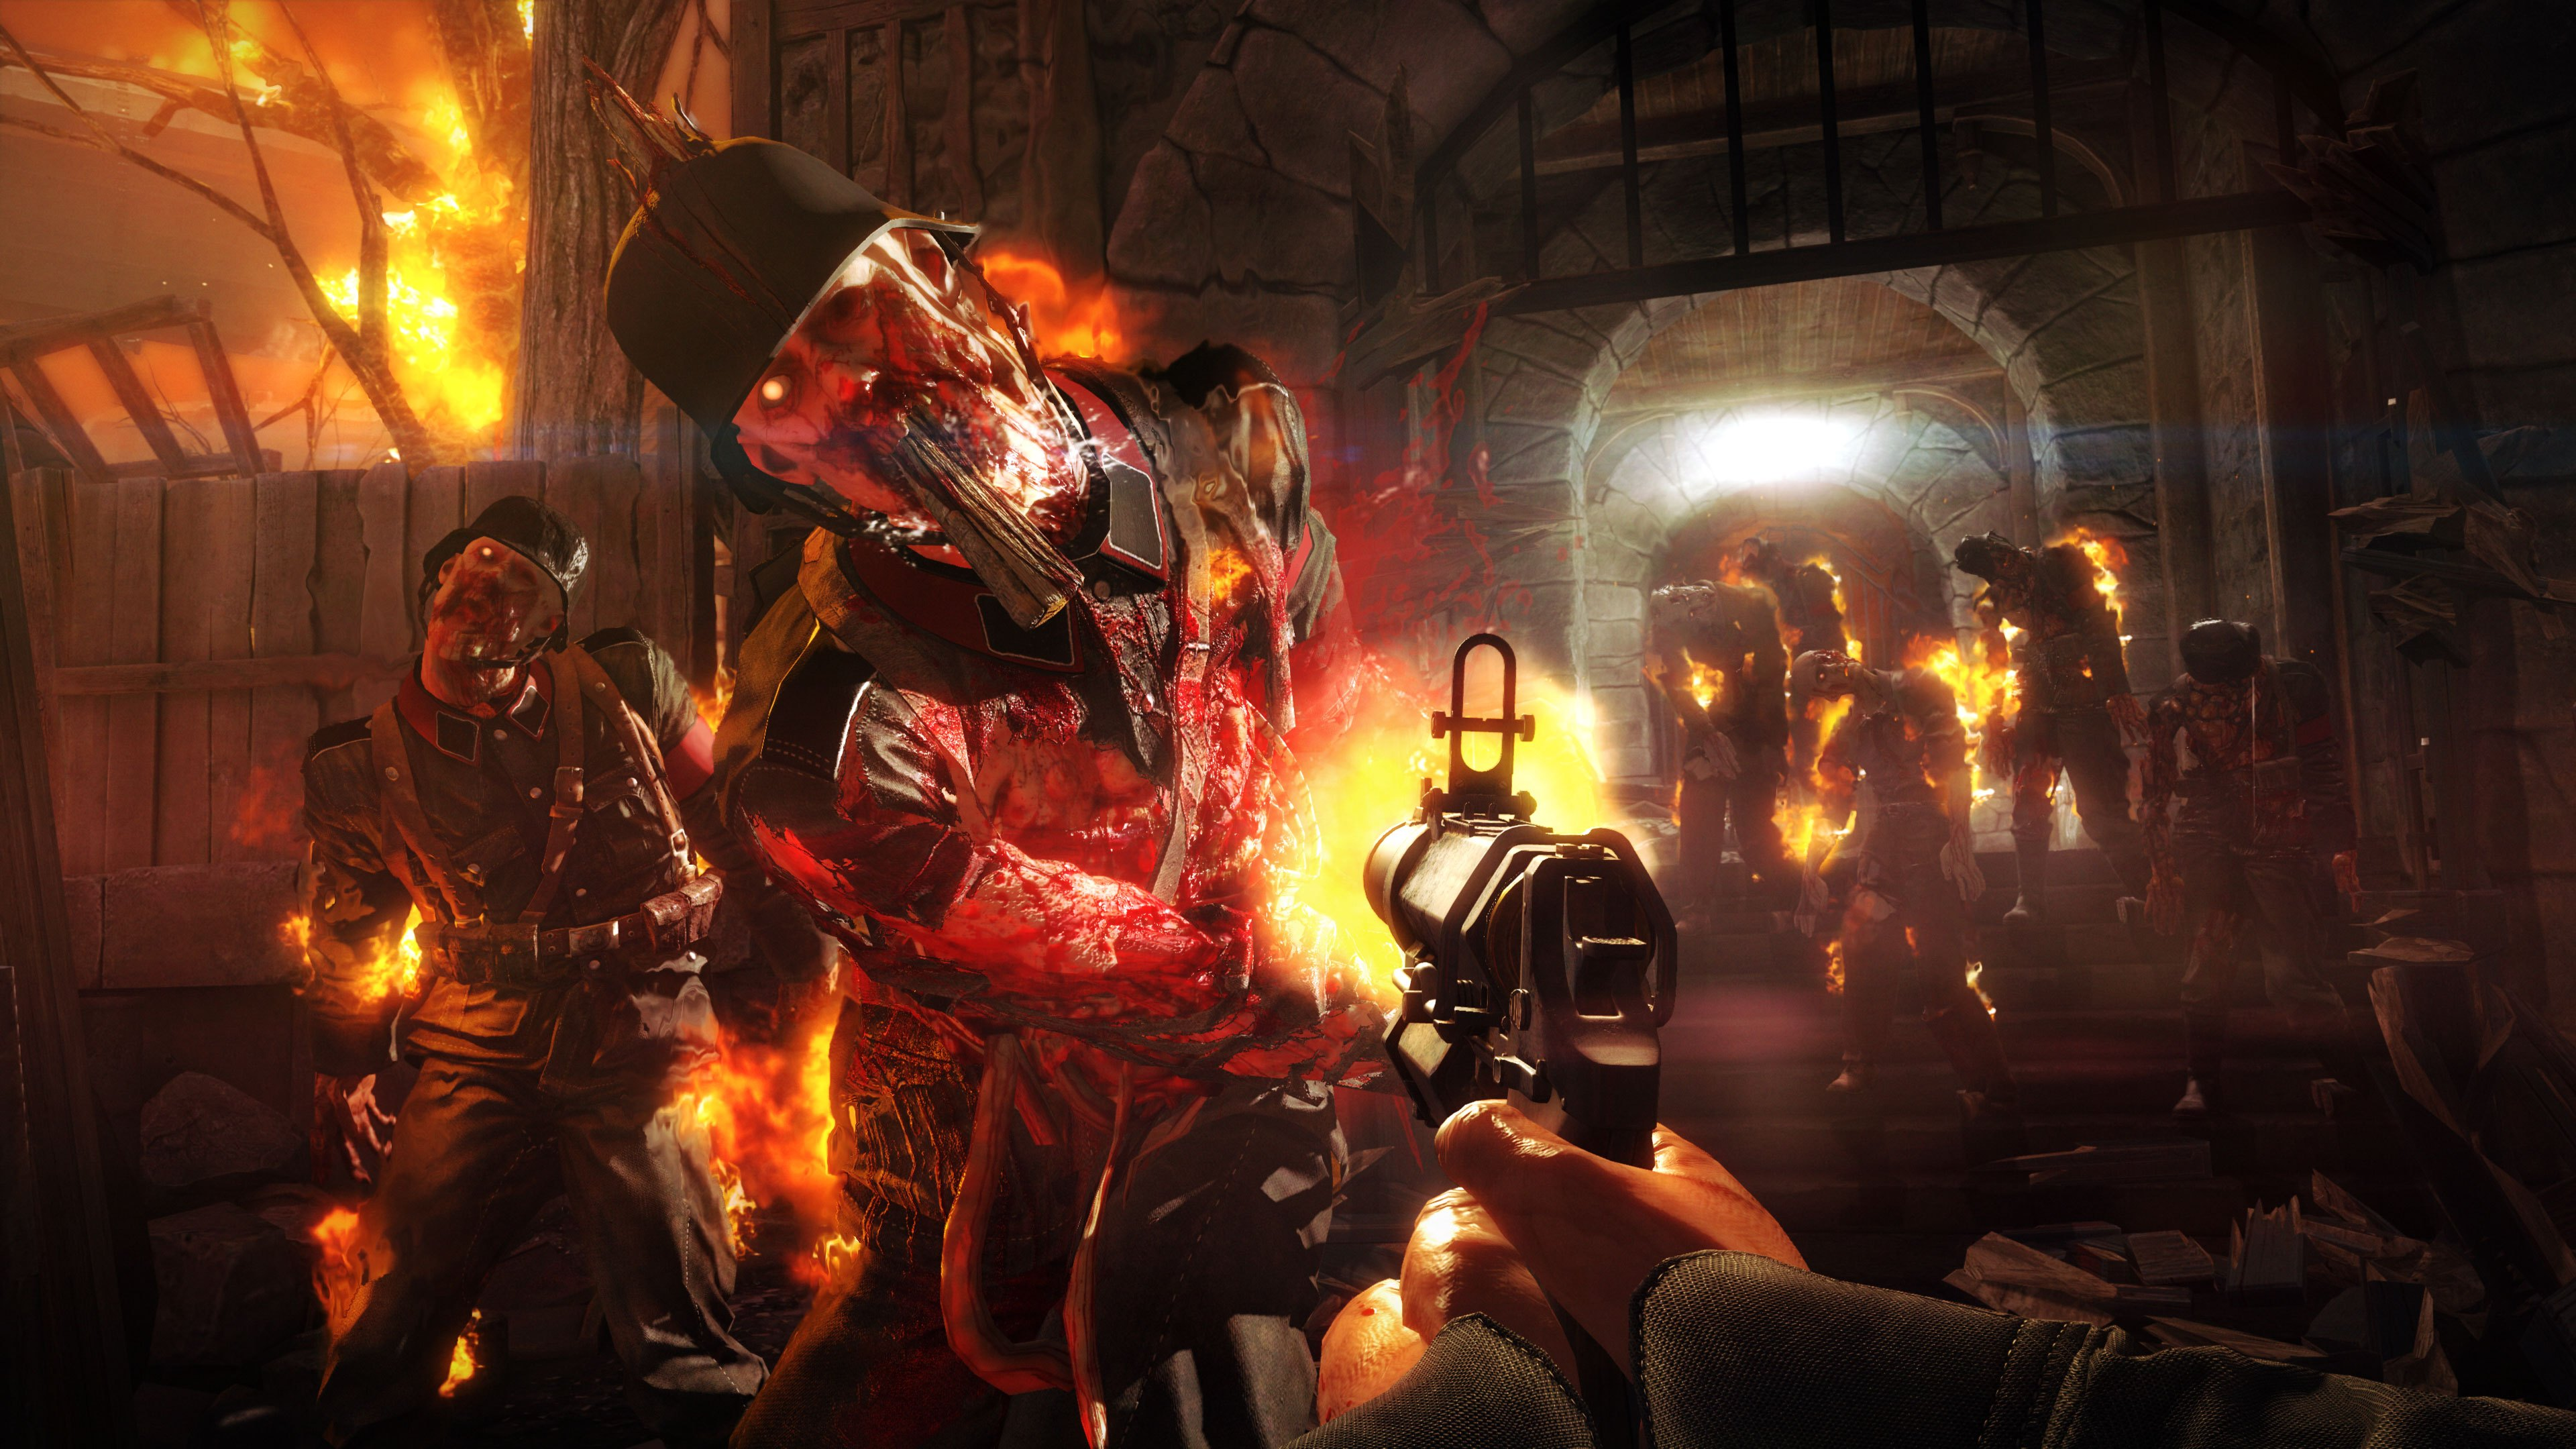 Wolfenstein-The-Old-Blood-Brings-Nazi-Zombies-Gets-Gameplay-Details-479592-5